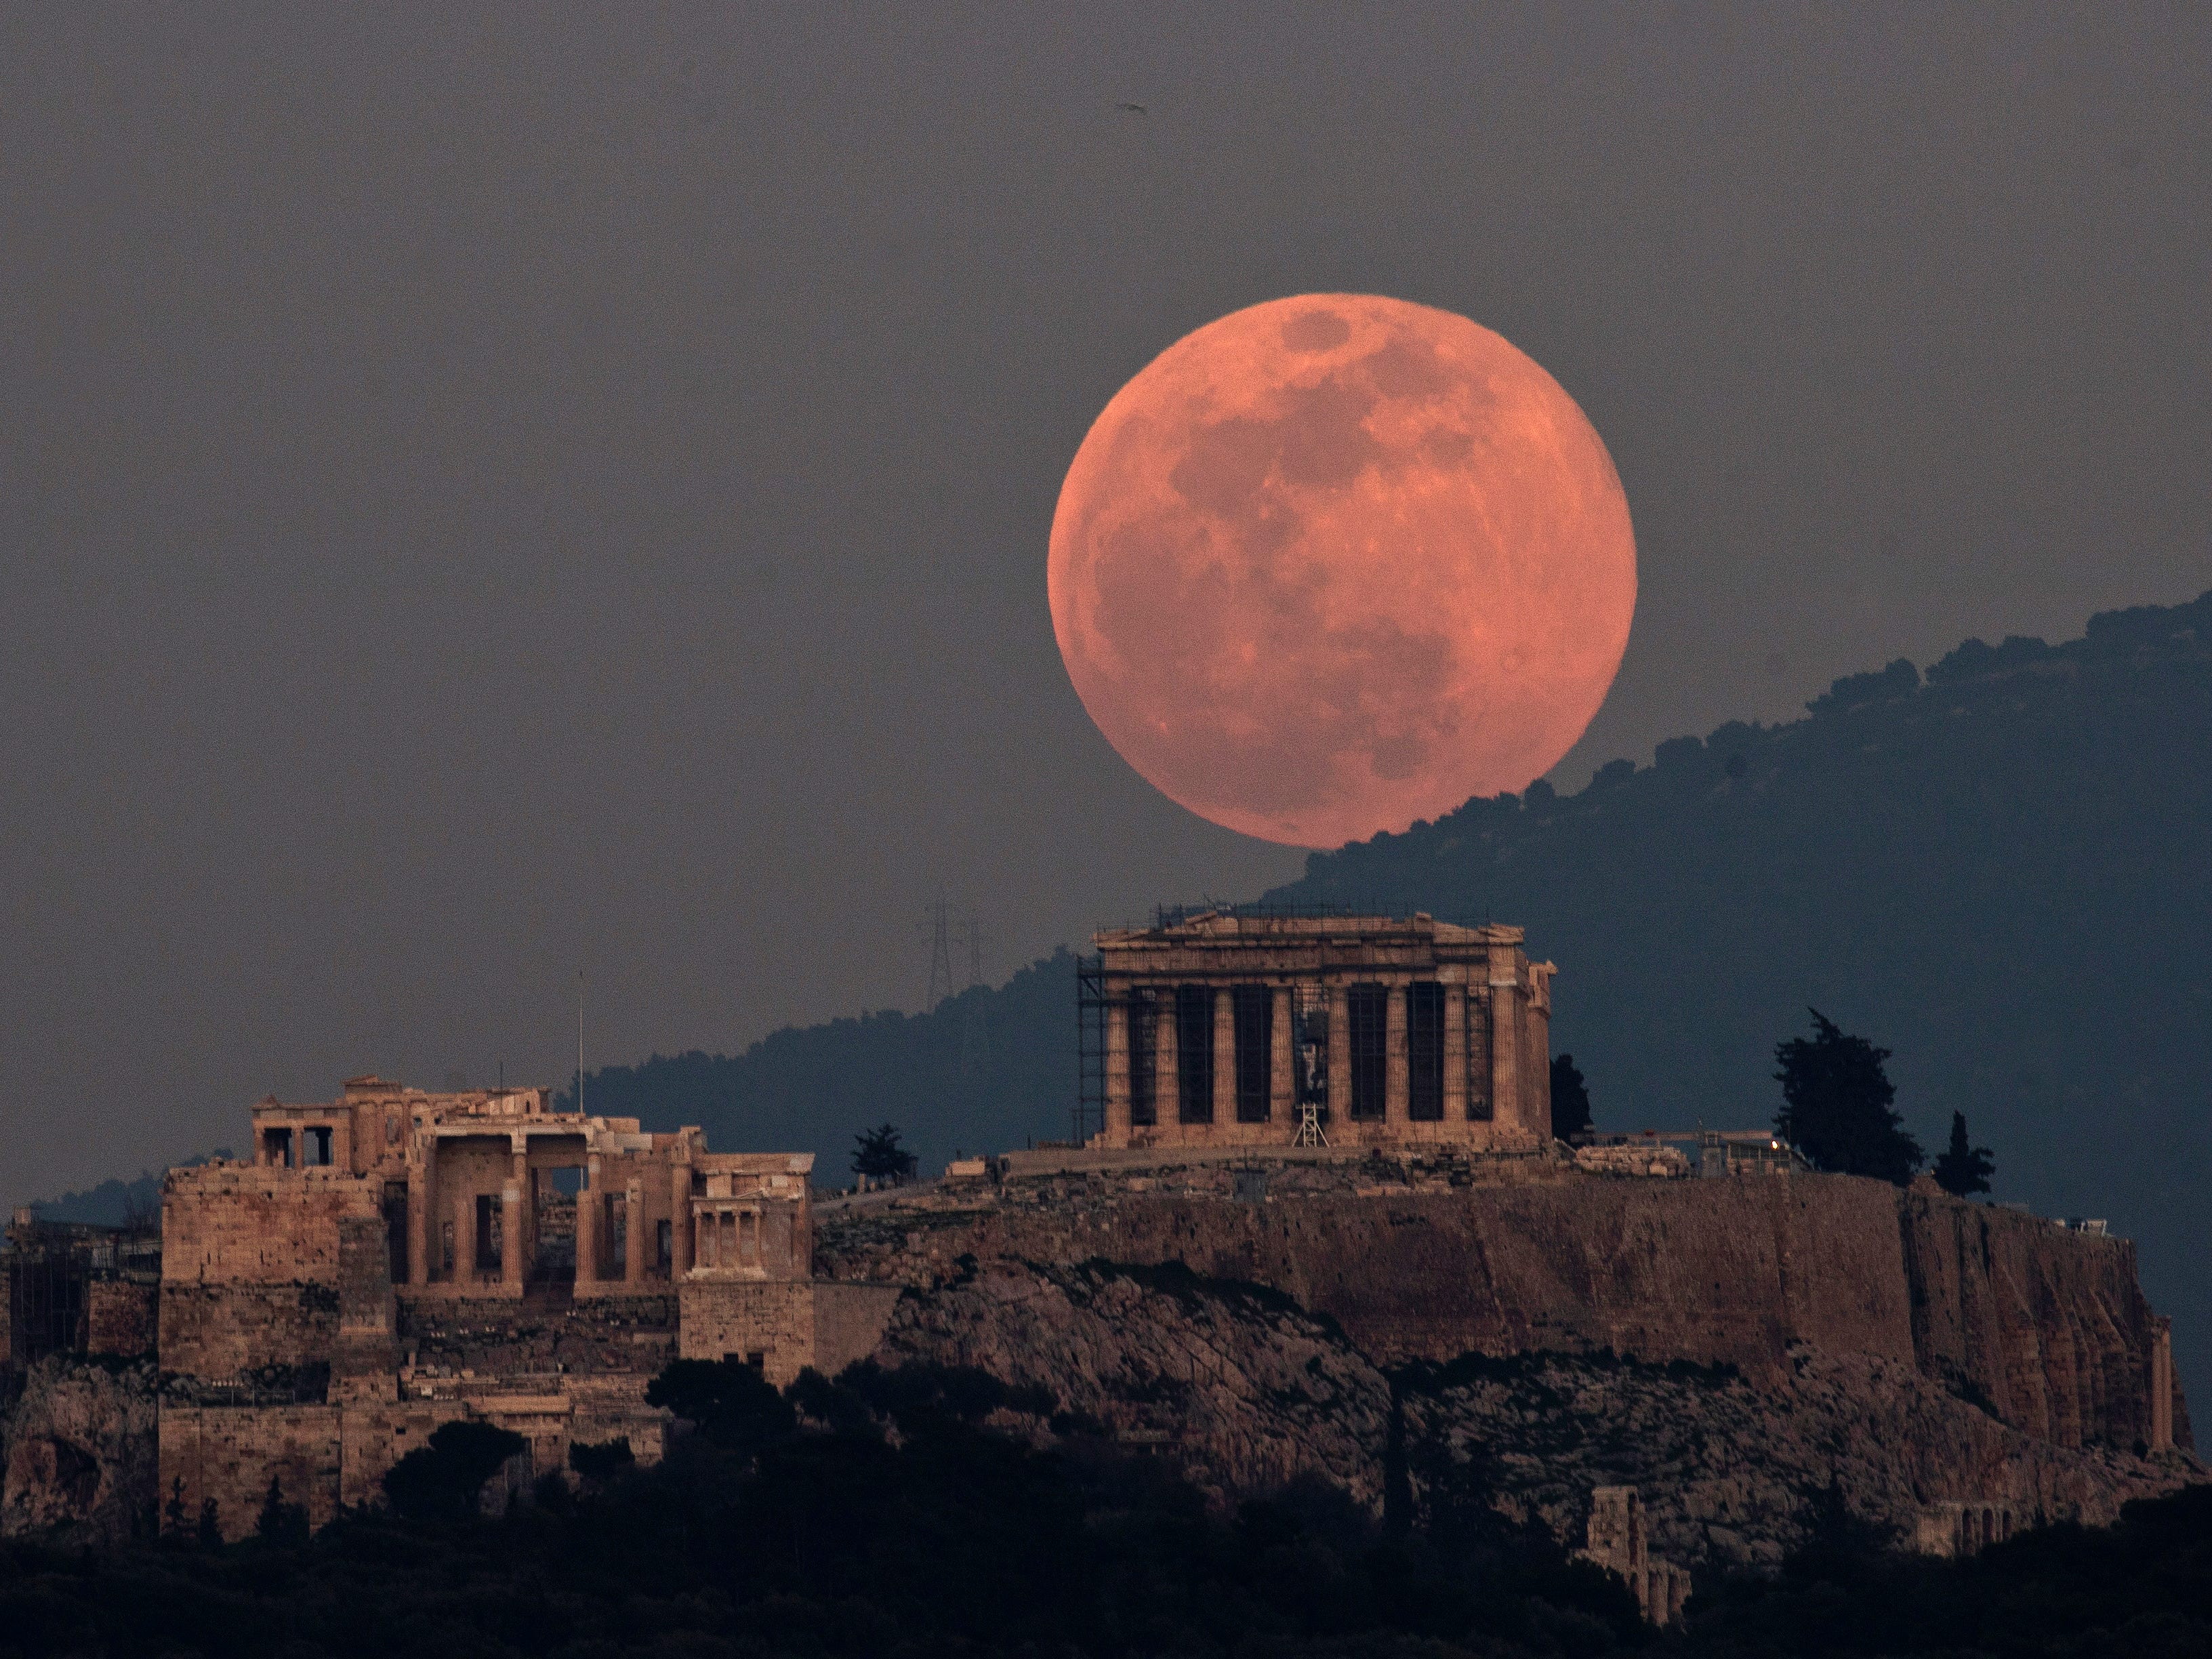 A supermoon rises over the Parthenon on the ancient Acropolis Hill in Athens, Greece, on Feb. 19, 2019.